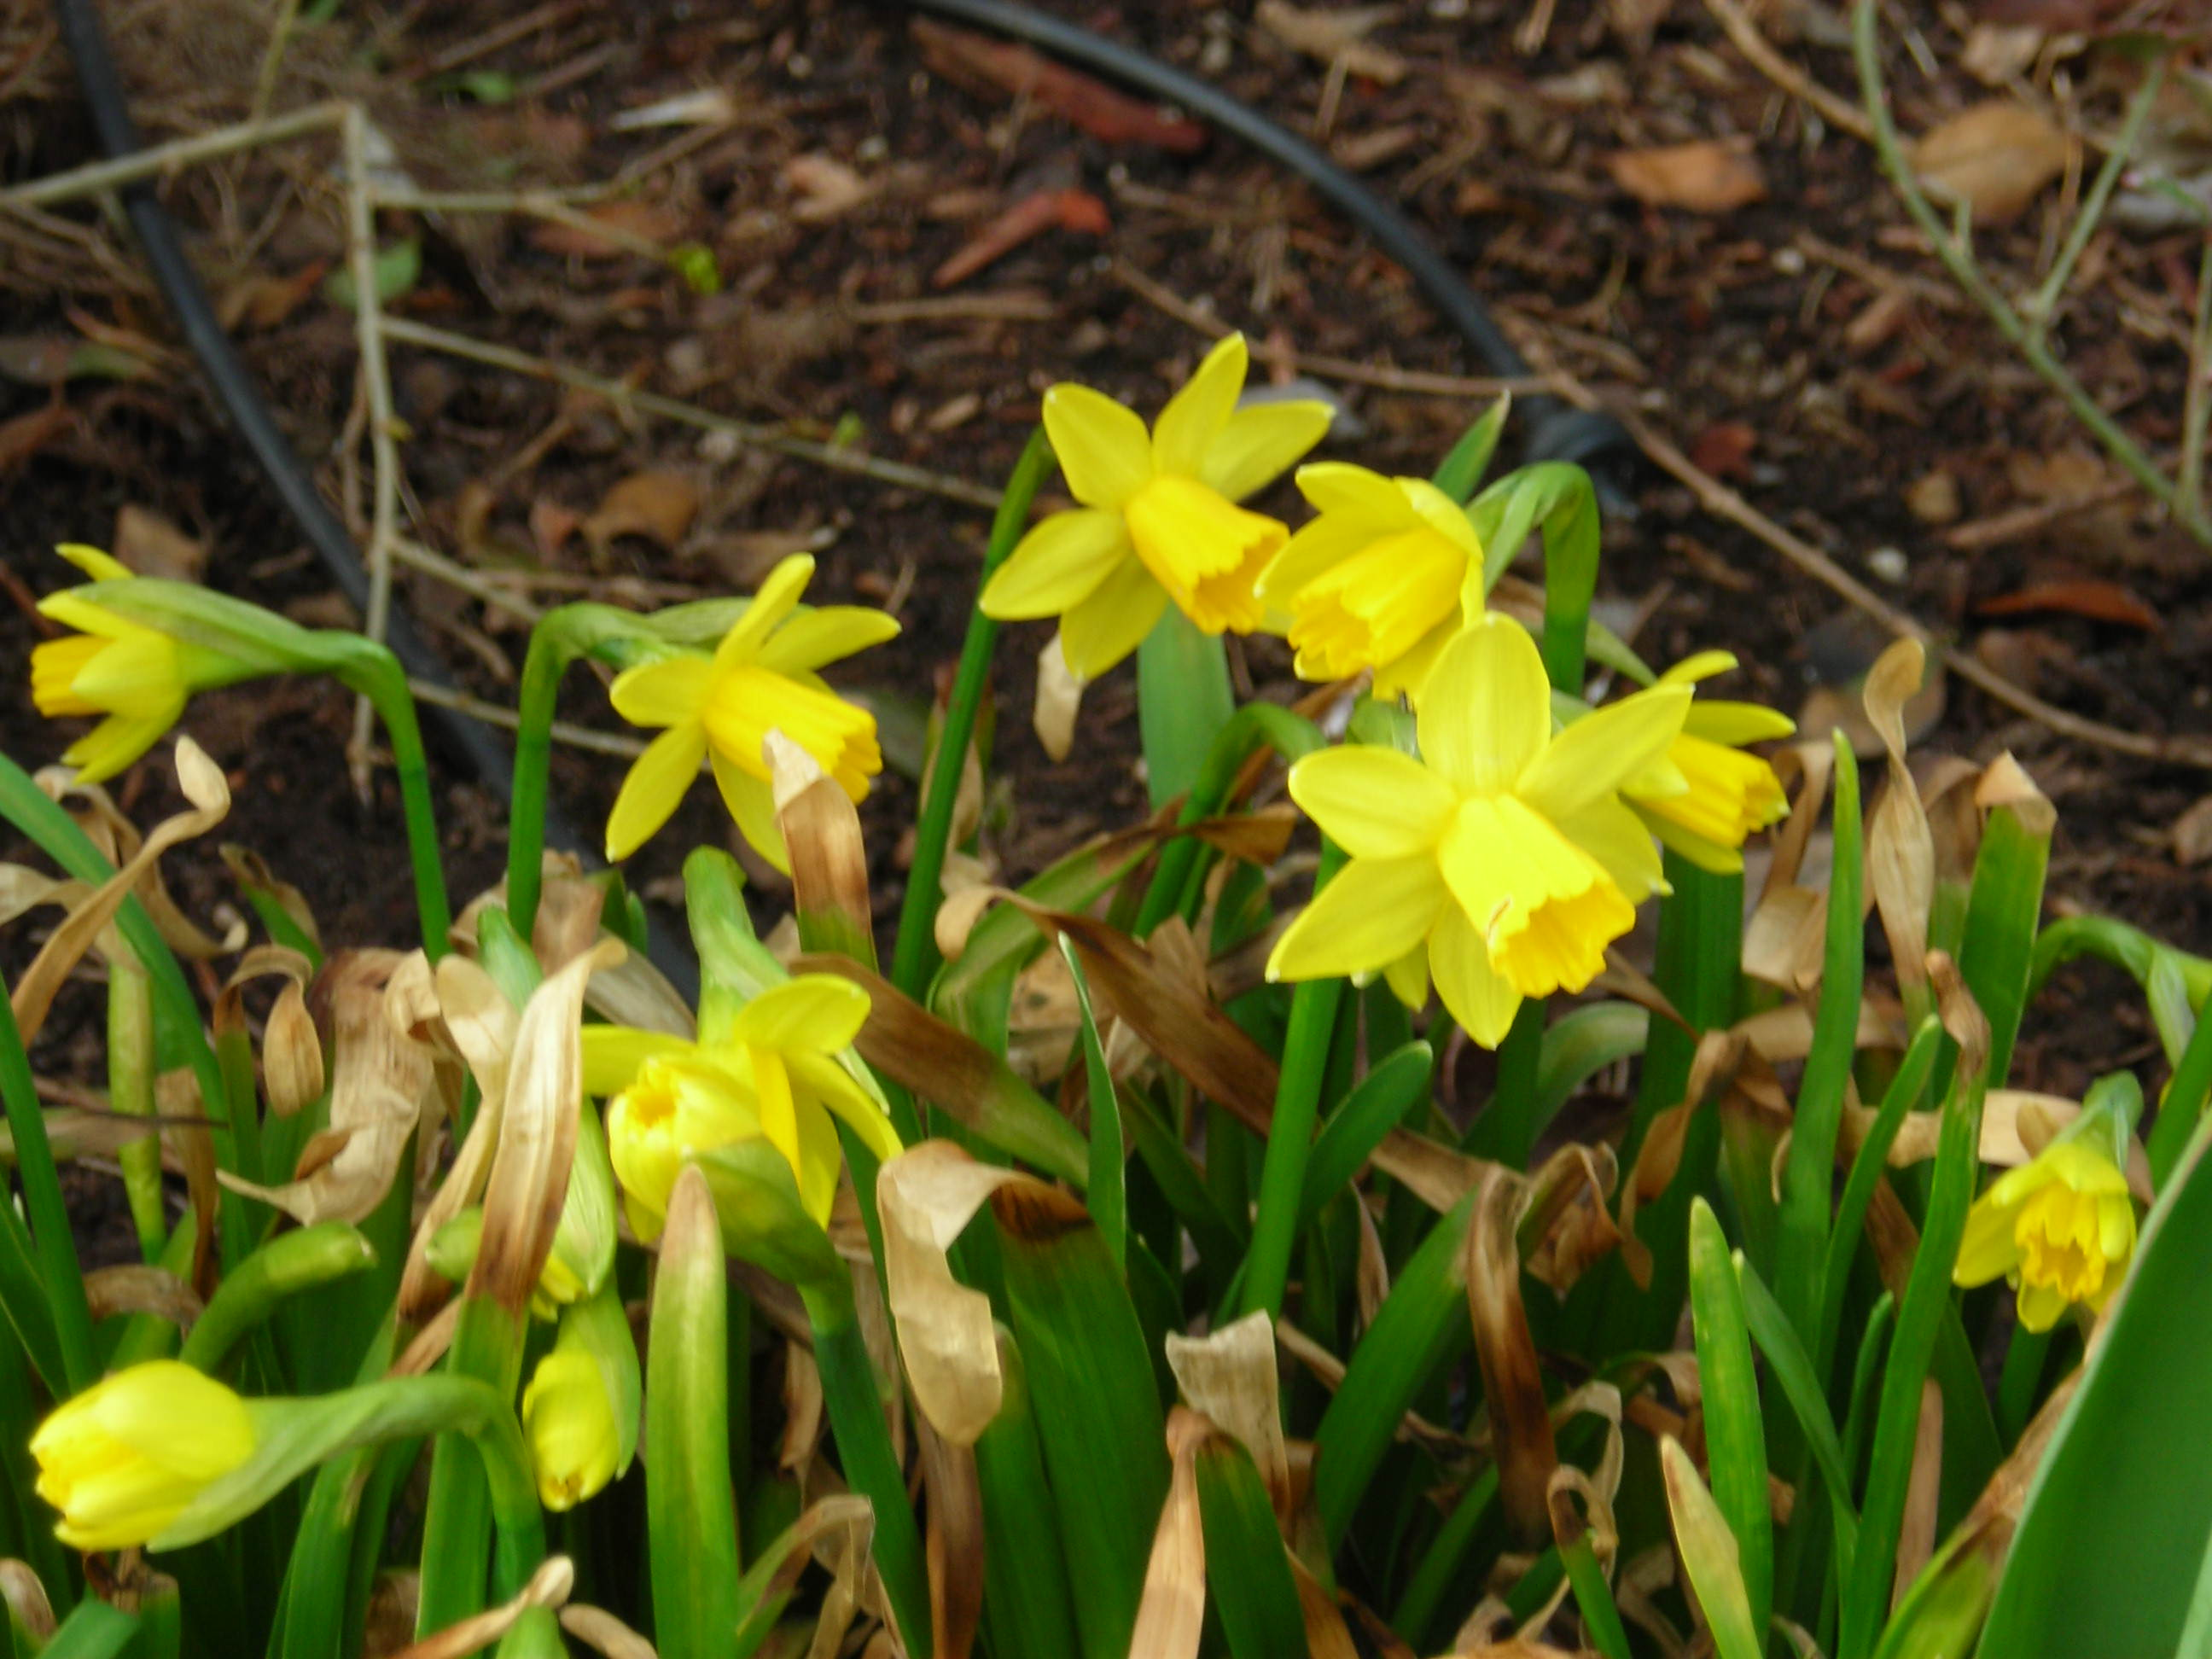 Daffodils awaking from winter